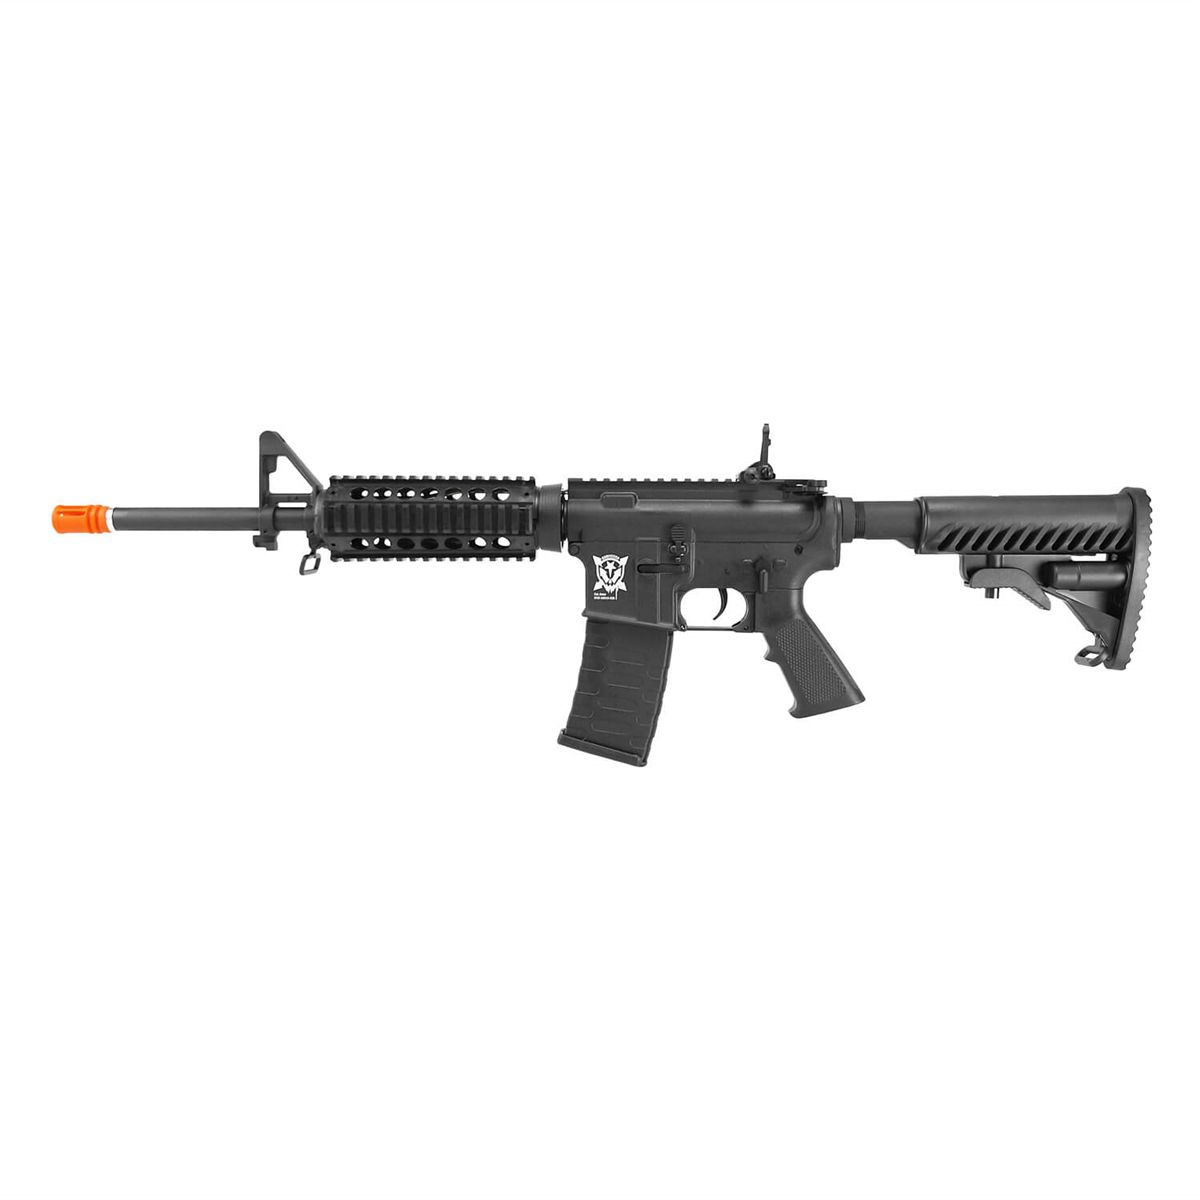 Rifle Airsoft Elétrico AEG M4 RIS Kompetitor Blowback 6mm - Aps Conception